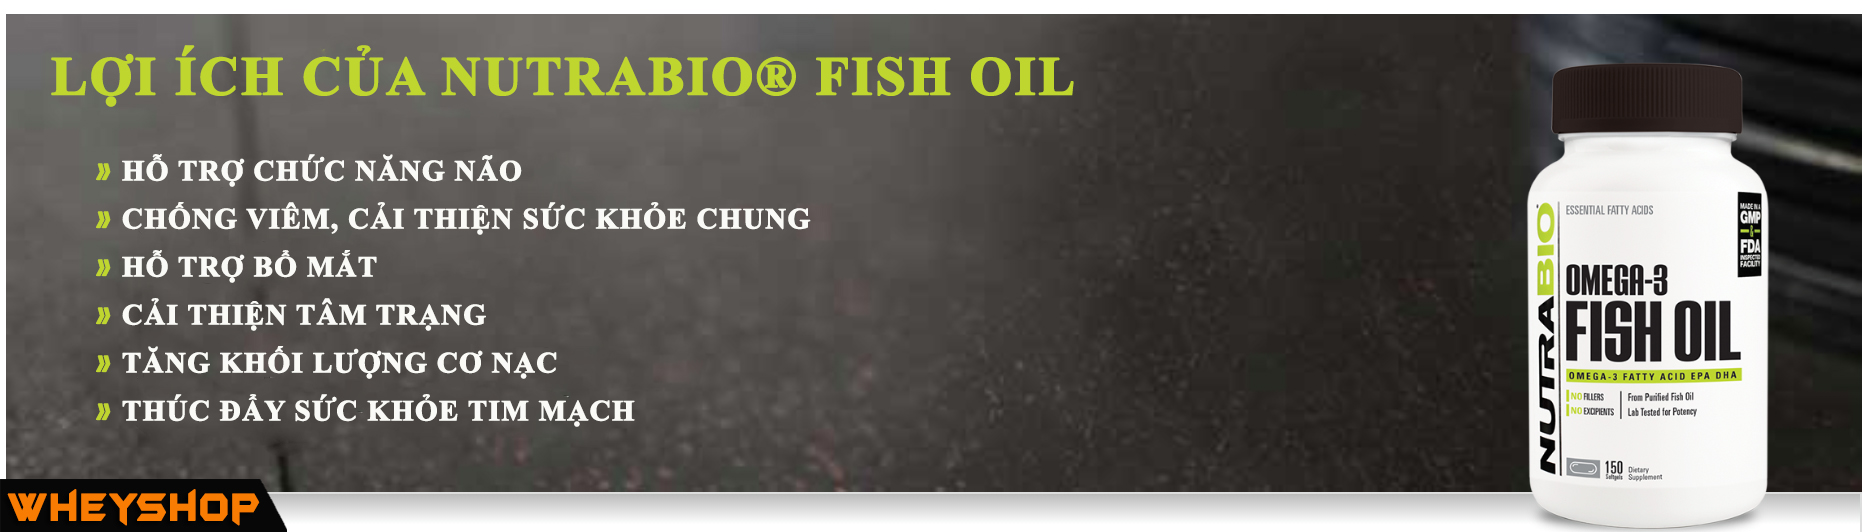 FISH OIL - NEW